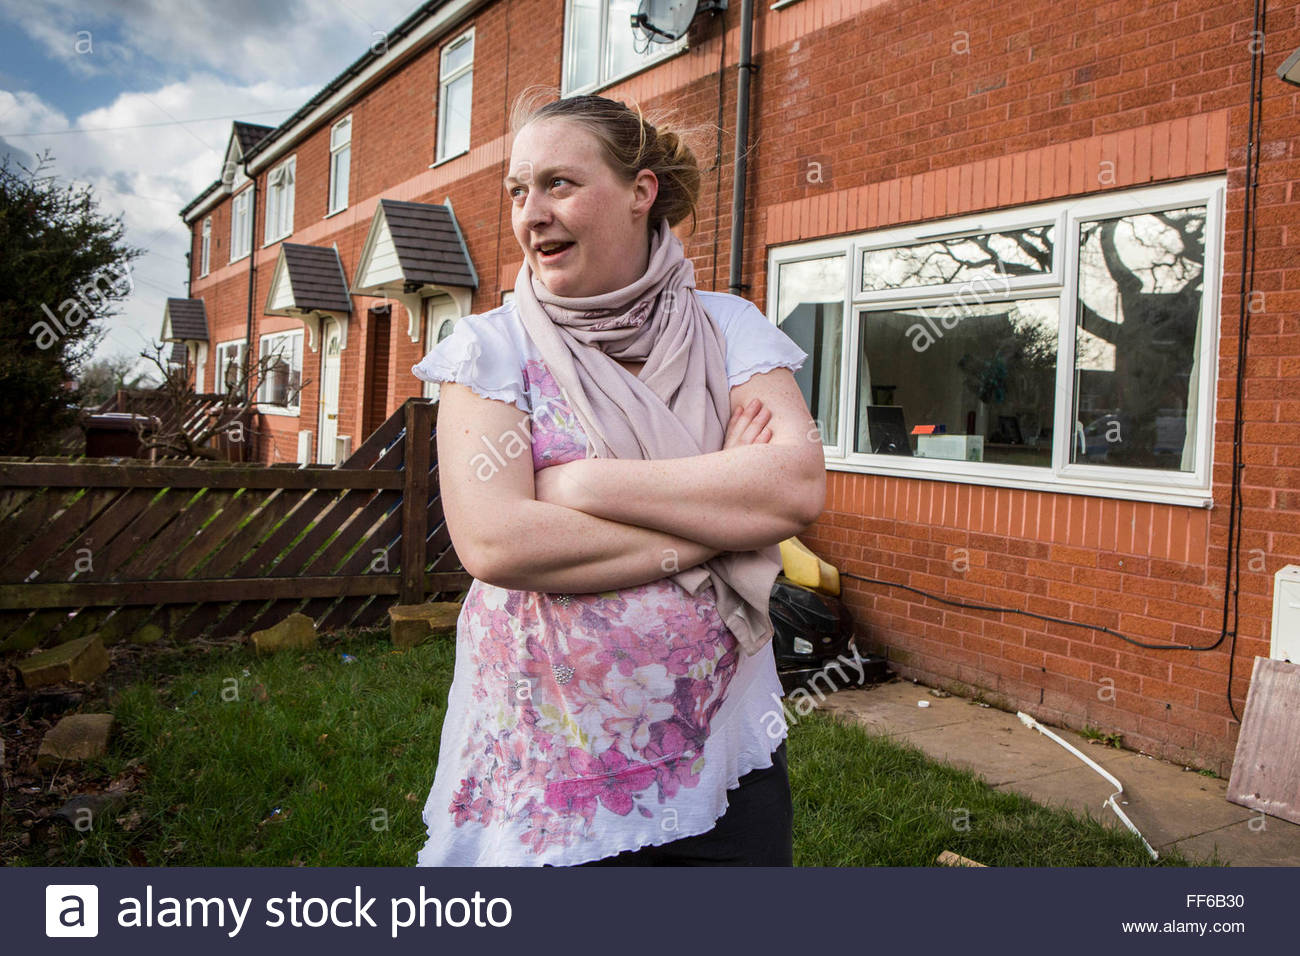 a young pregnant mother outside her house on a council estate in